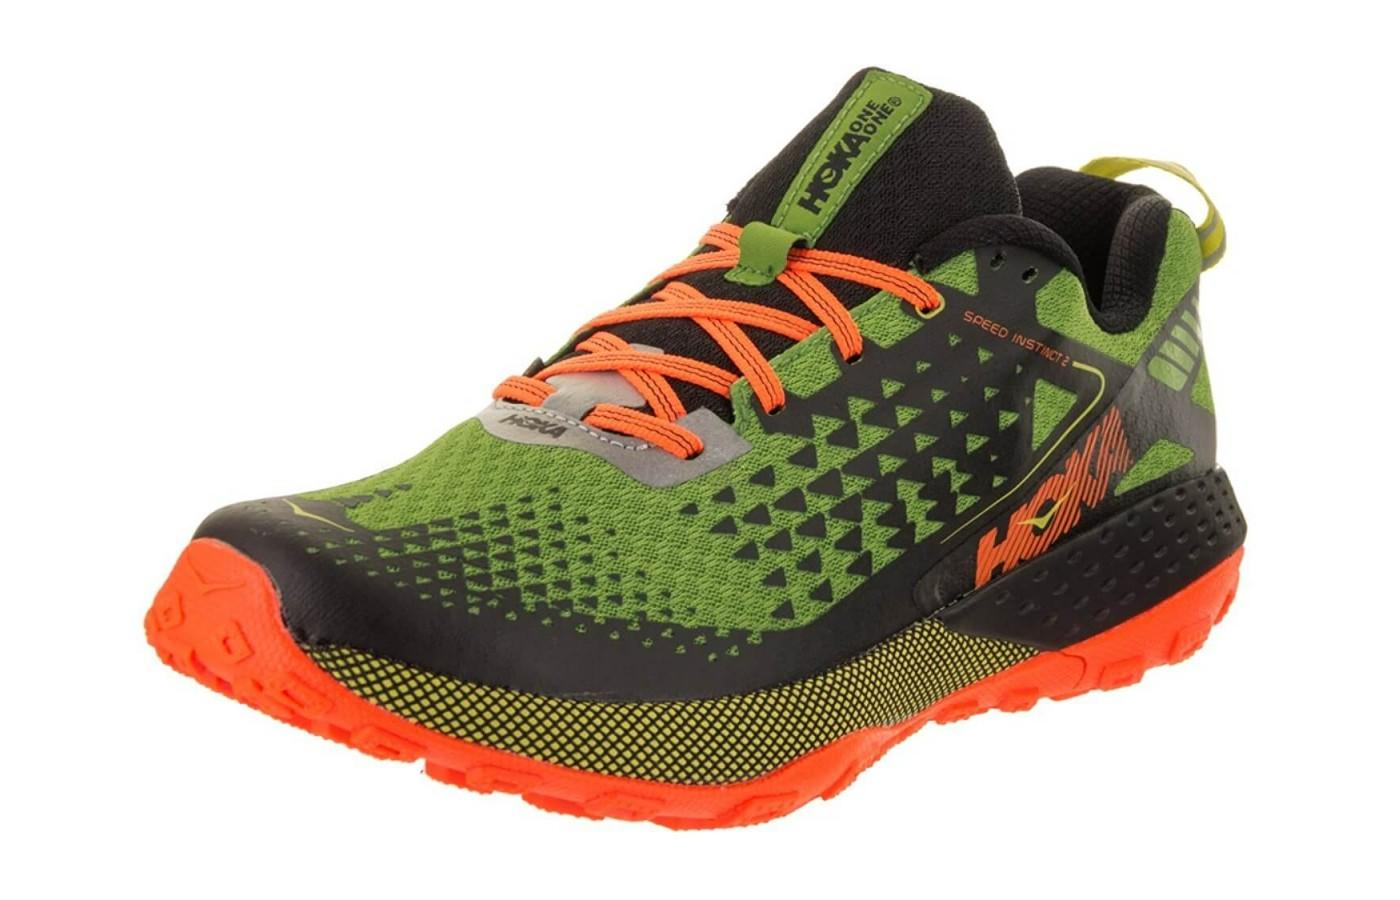 outlet store 71829 a2a7b Hoka One One Speed Instinct 2 Fully Reviewed for Quality